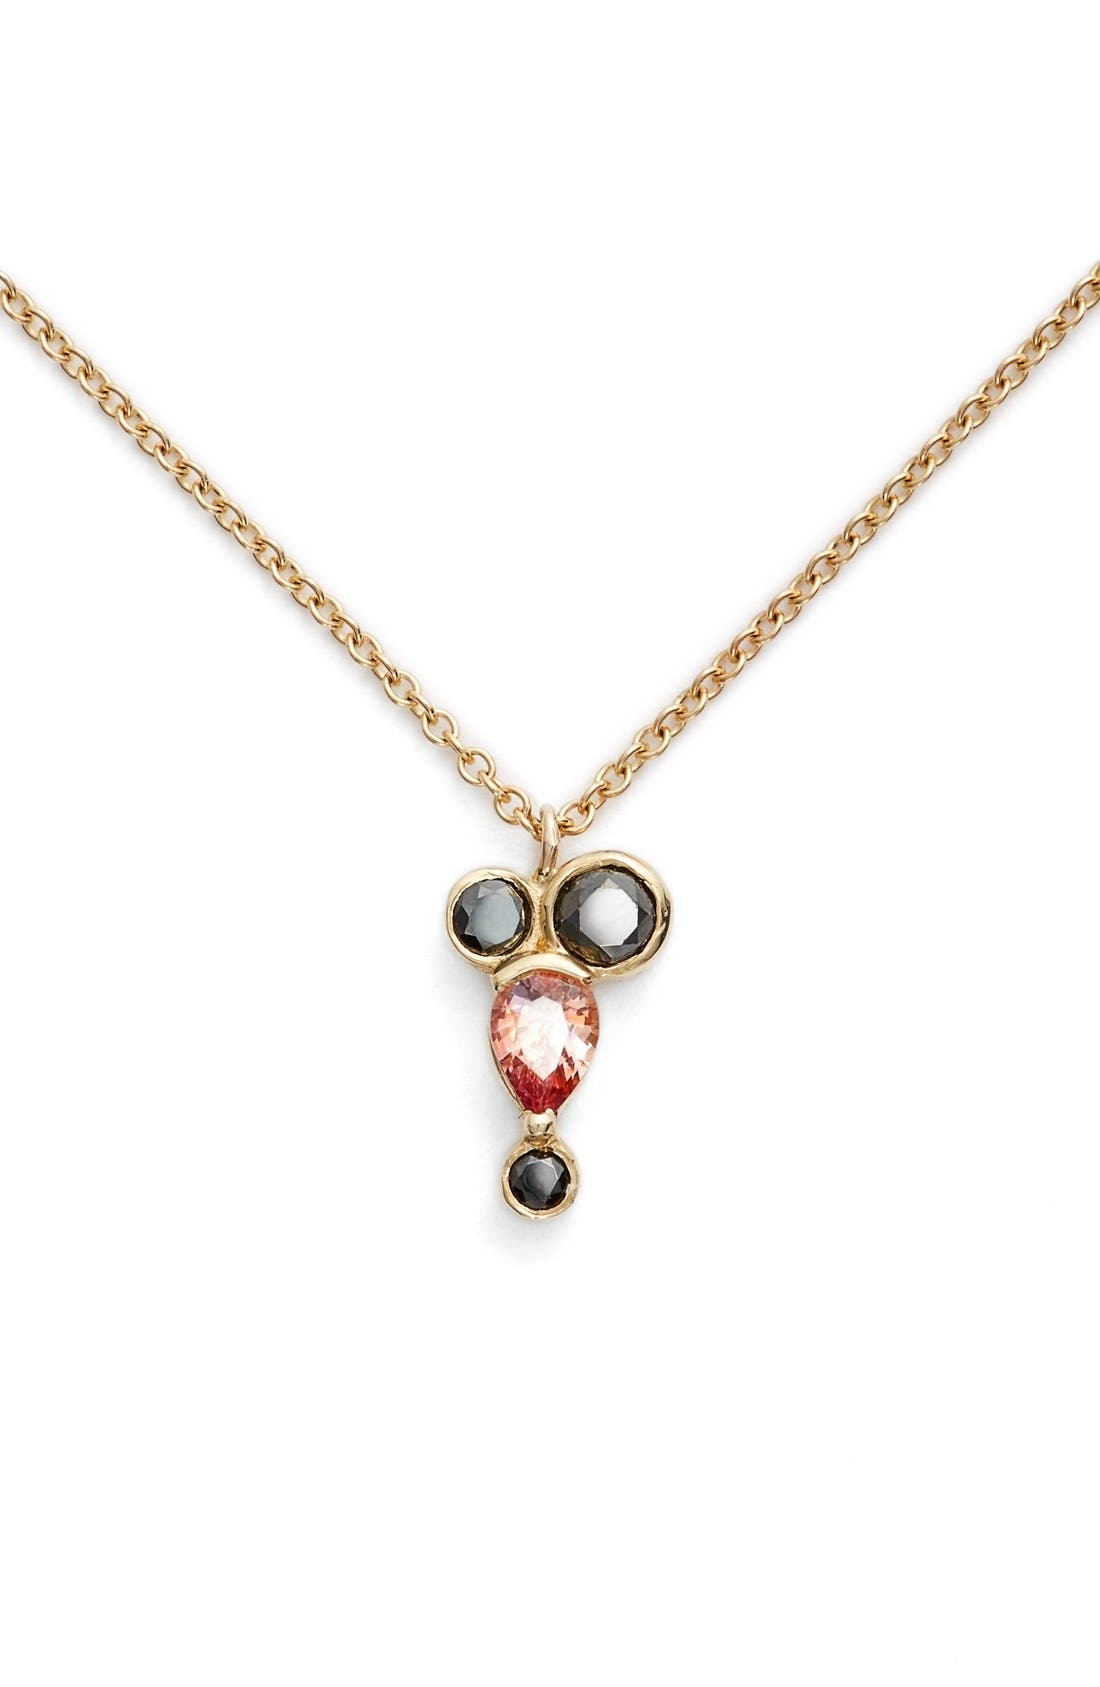 MOCIUN Peach Sapphire & Black Diamond Necklace (Nordstrom Exclusive)